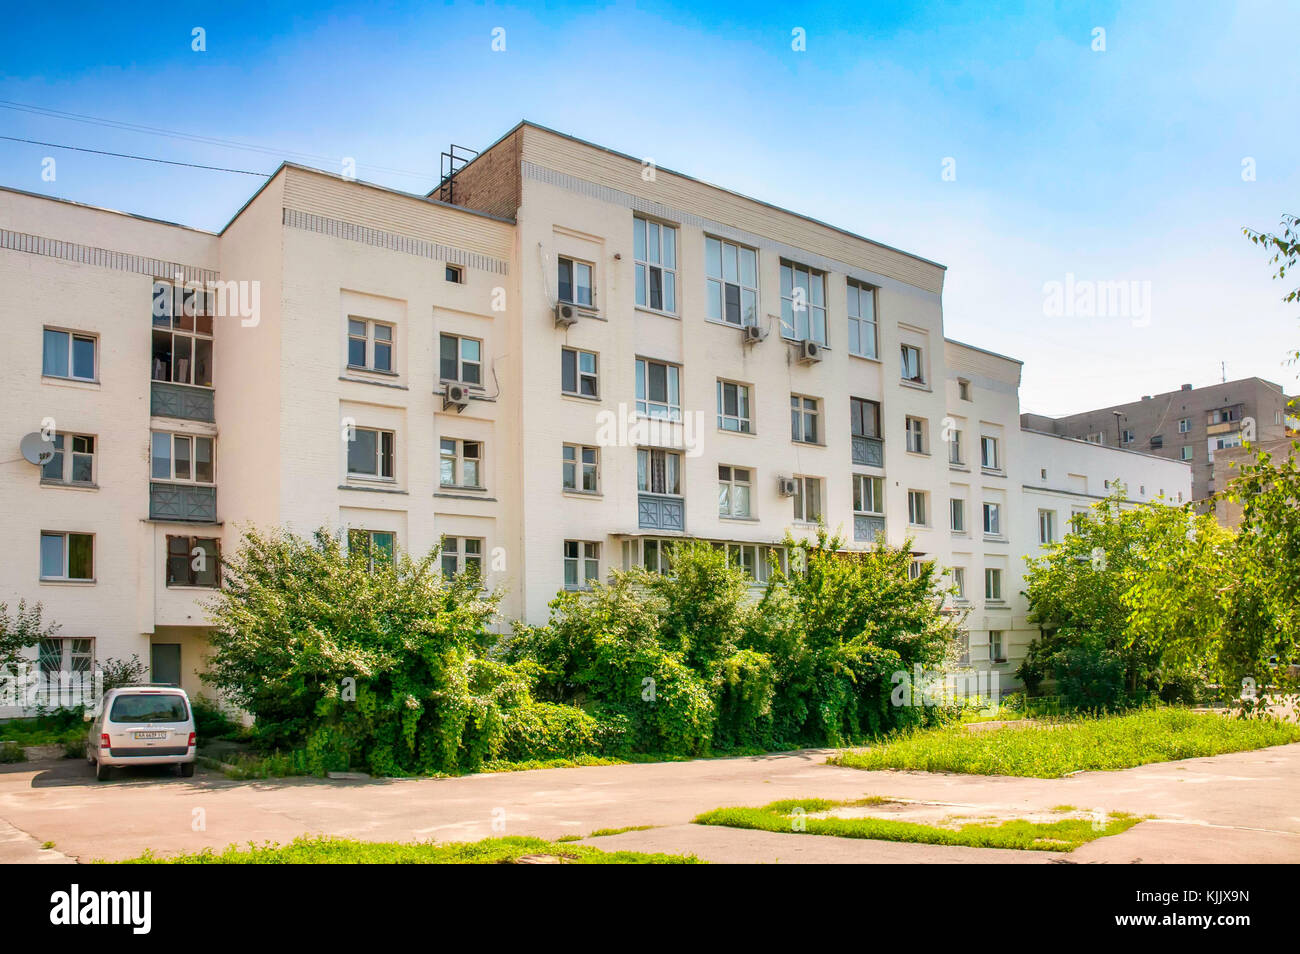 ukraine july 14 stock photos  u0026 ukraine july 14 stock images